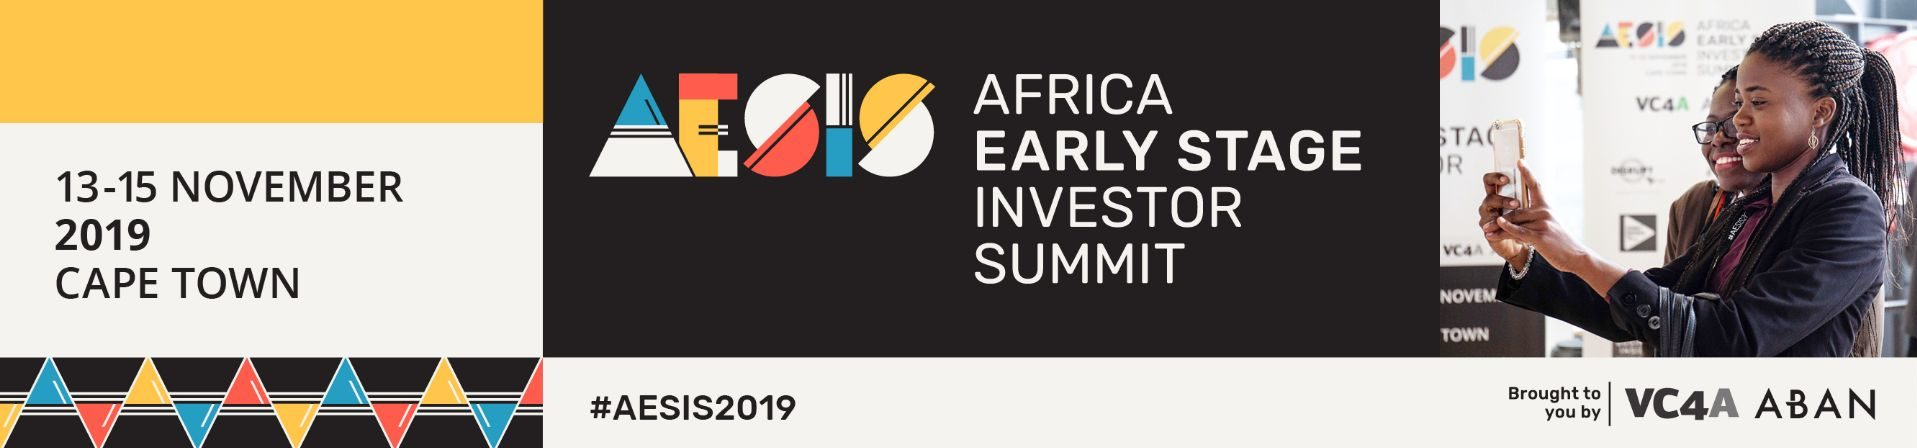 Africa Early Stage Investor Summit 2019